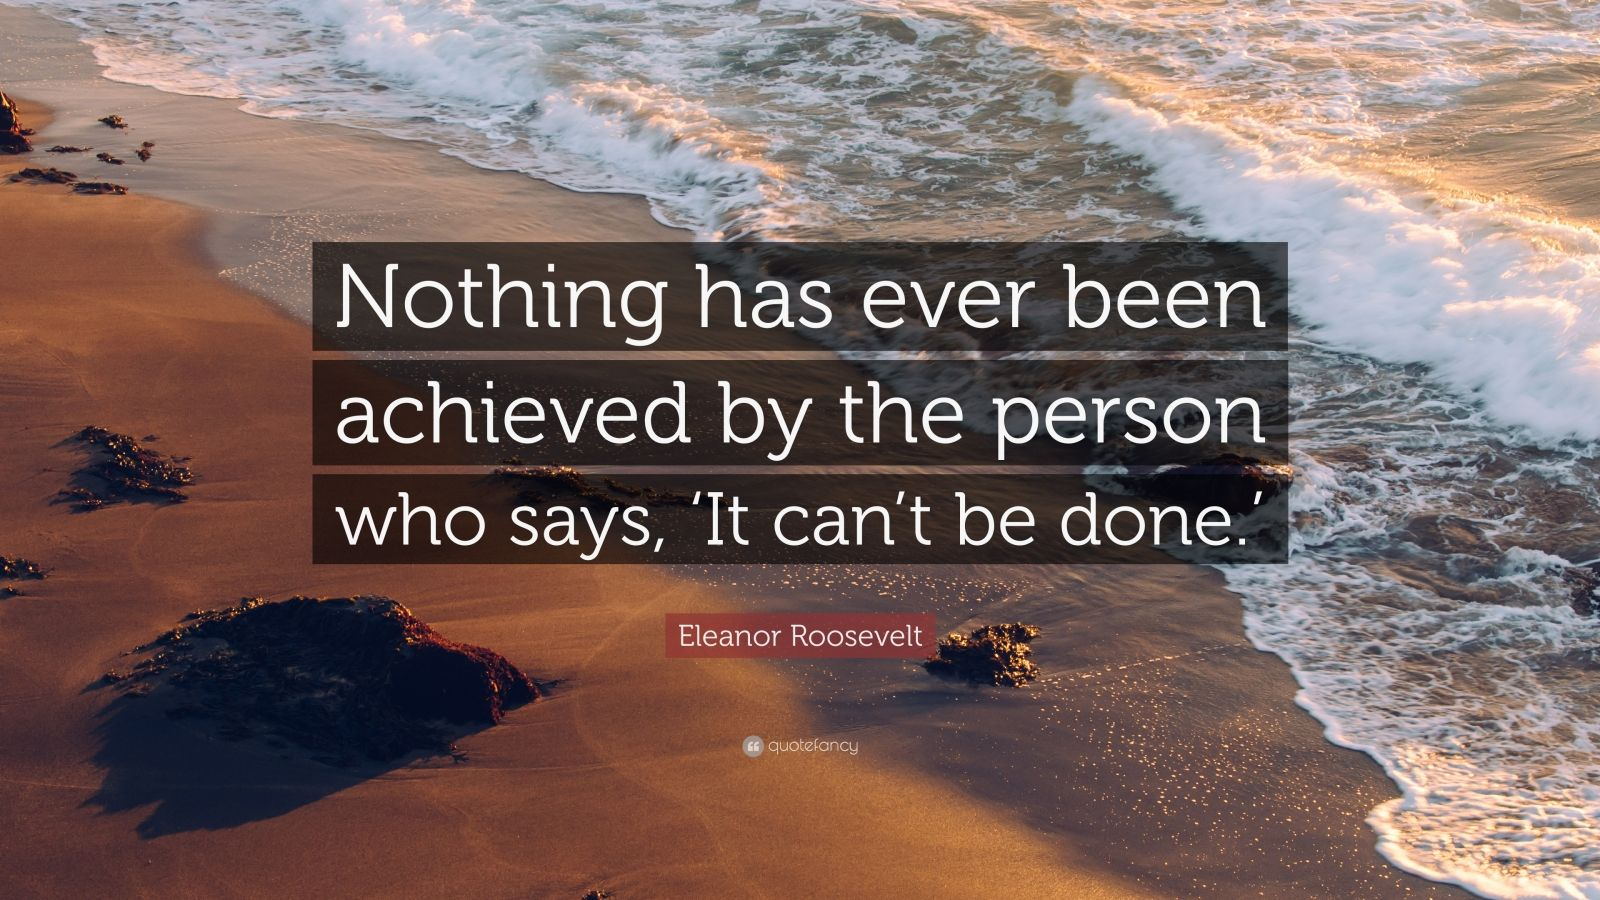 """Eleanor Roosevelt Quote: """"Nothing has ever been achieved by the person who says, 'It can't be done.'"""""""